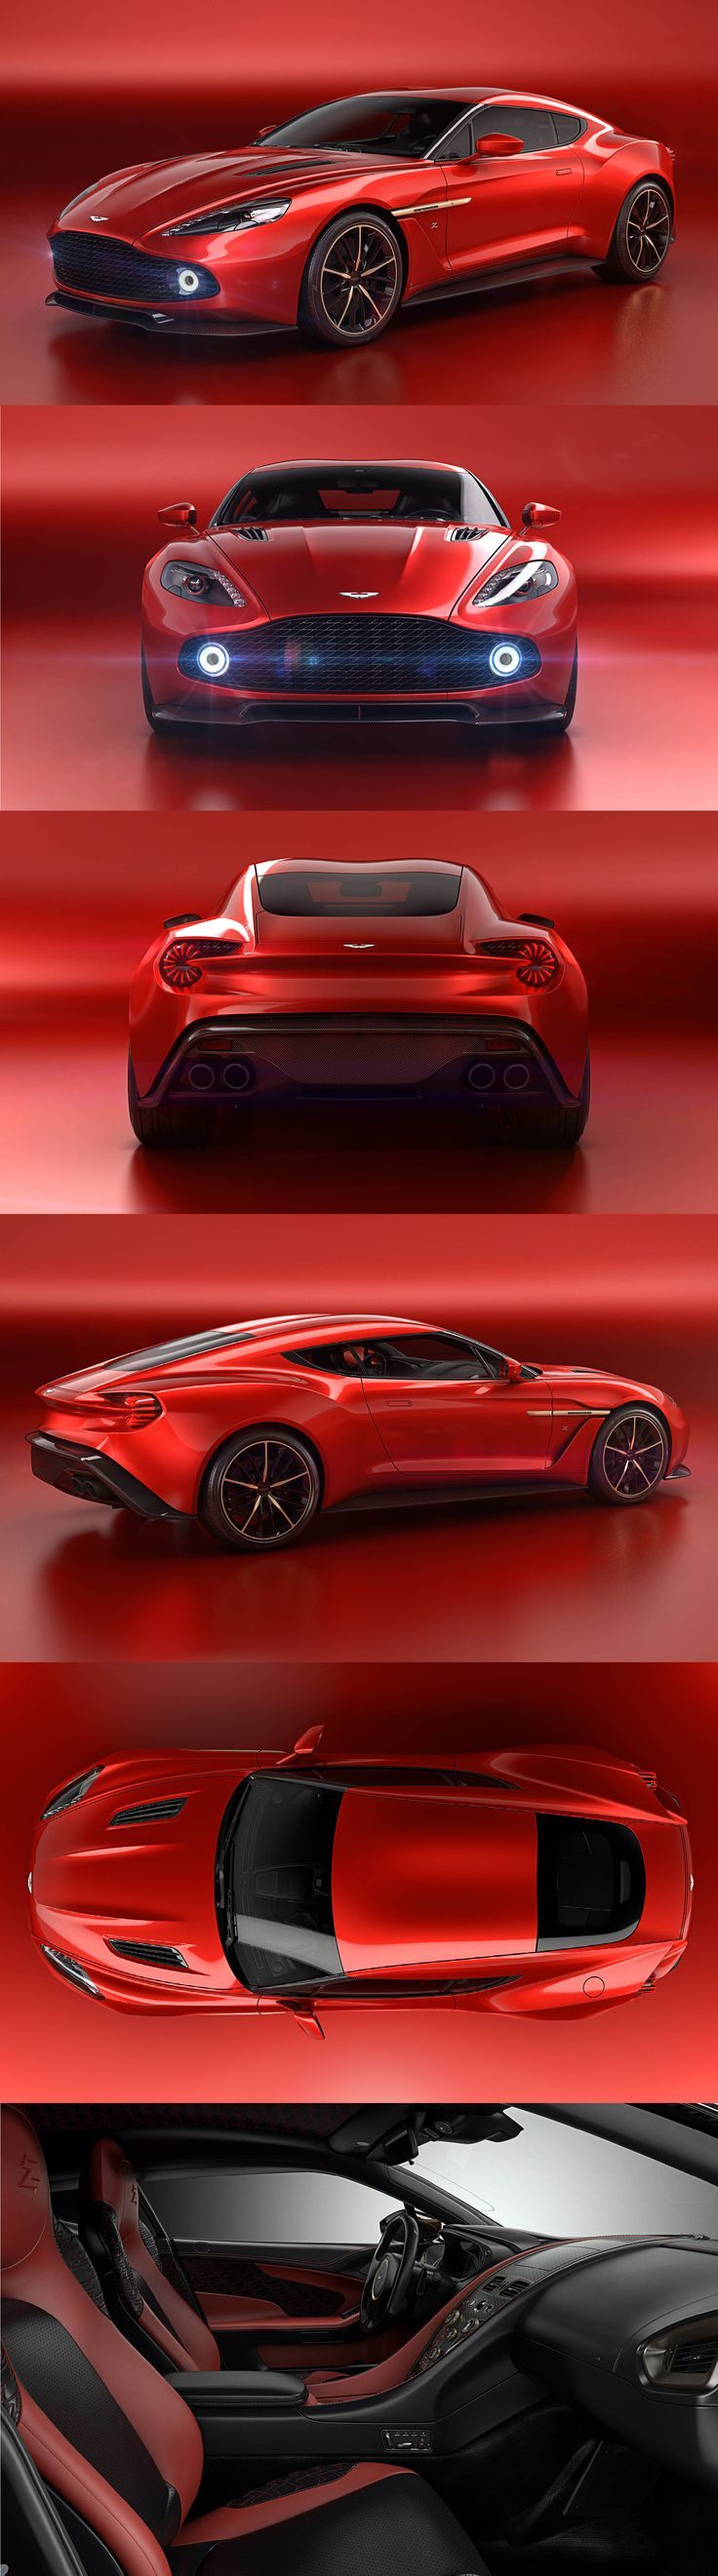 The New Aston Martin Vanquish Zagato Concept Is Painfully Gorgeous | Zagato and Aston Martin team up for a sumptuous concept based on the Vanquish